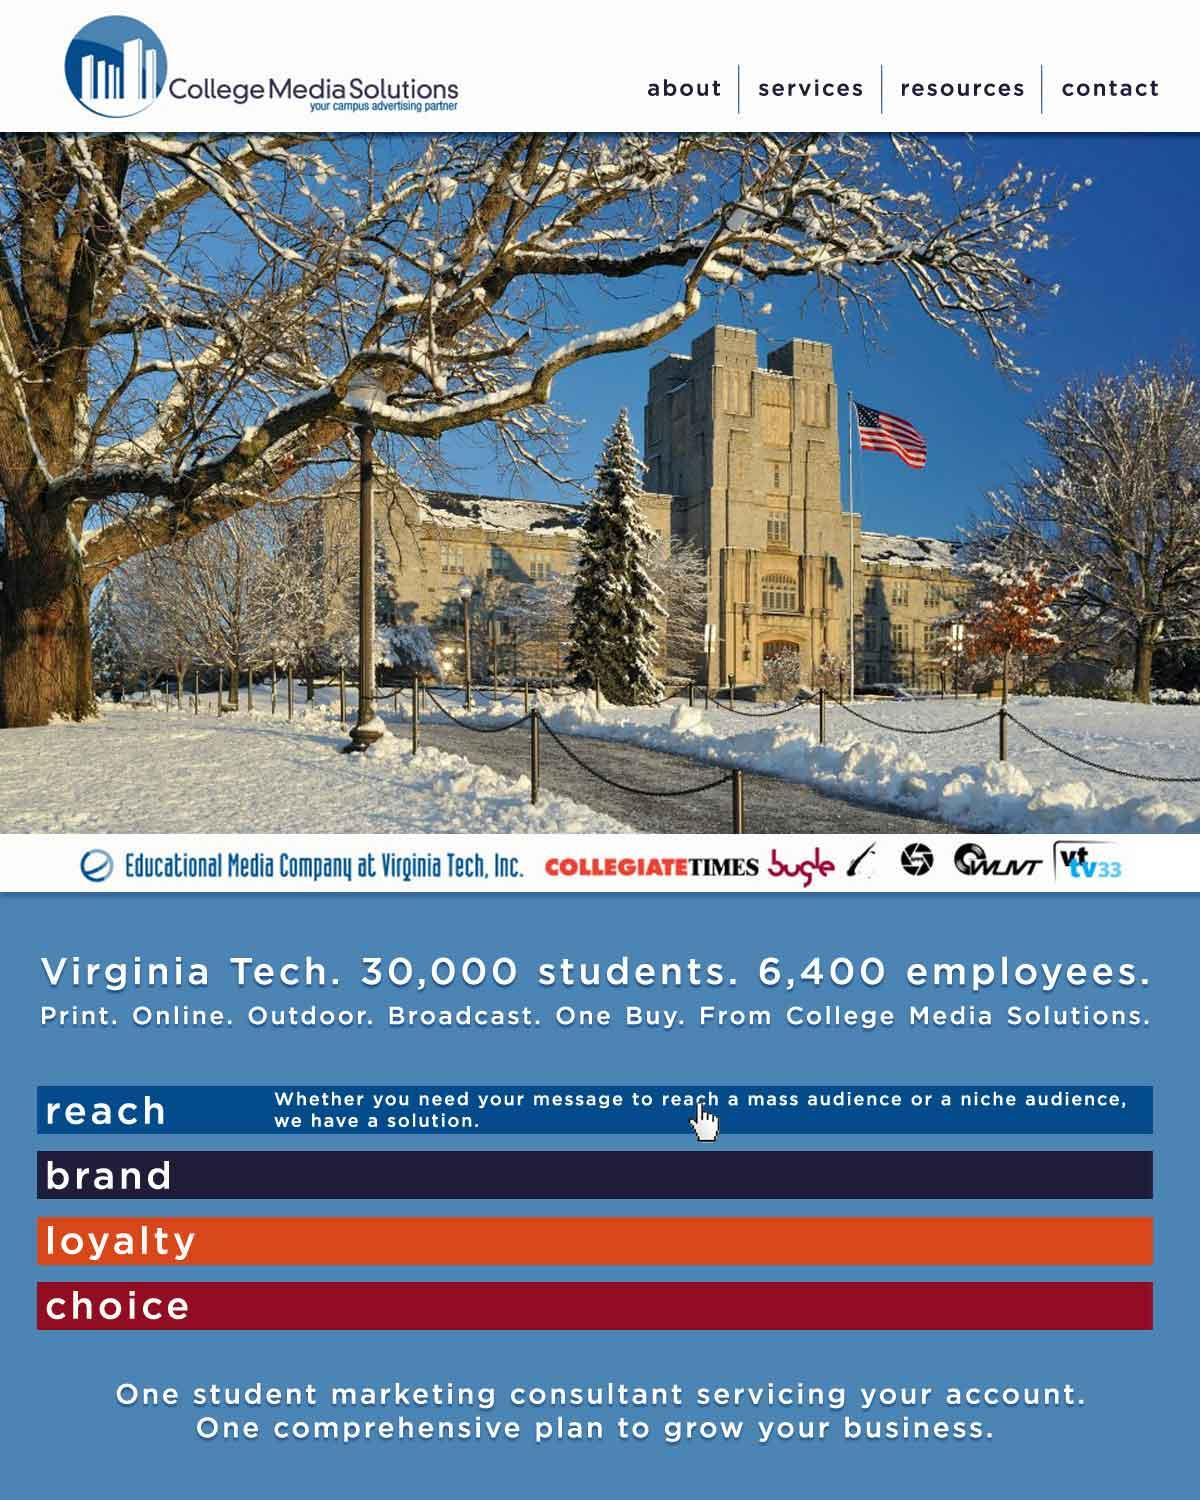 College Media Solutions Redesign - image 1 - student project